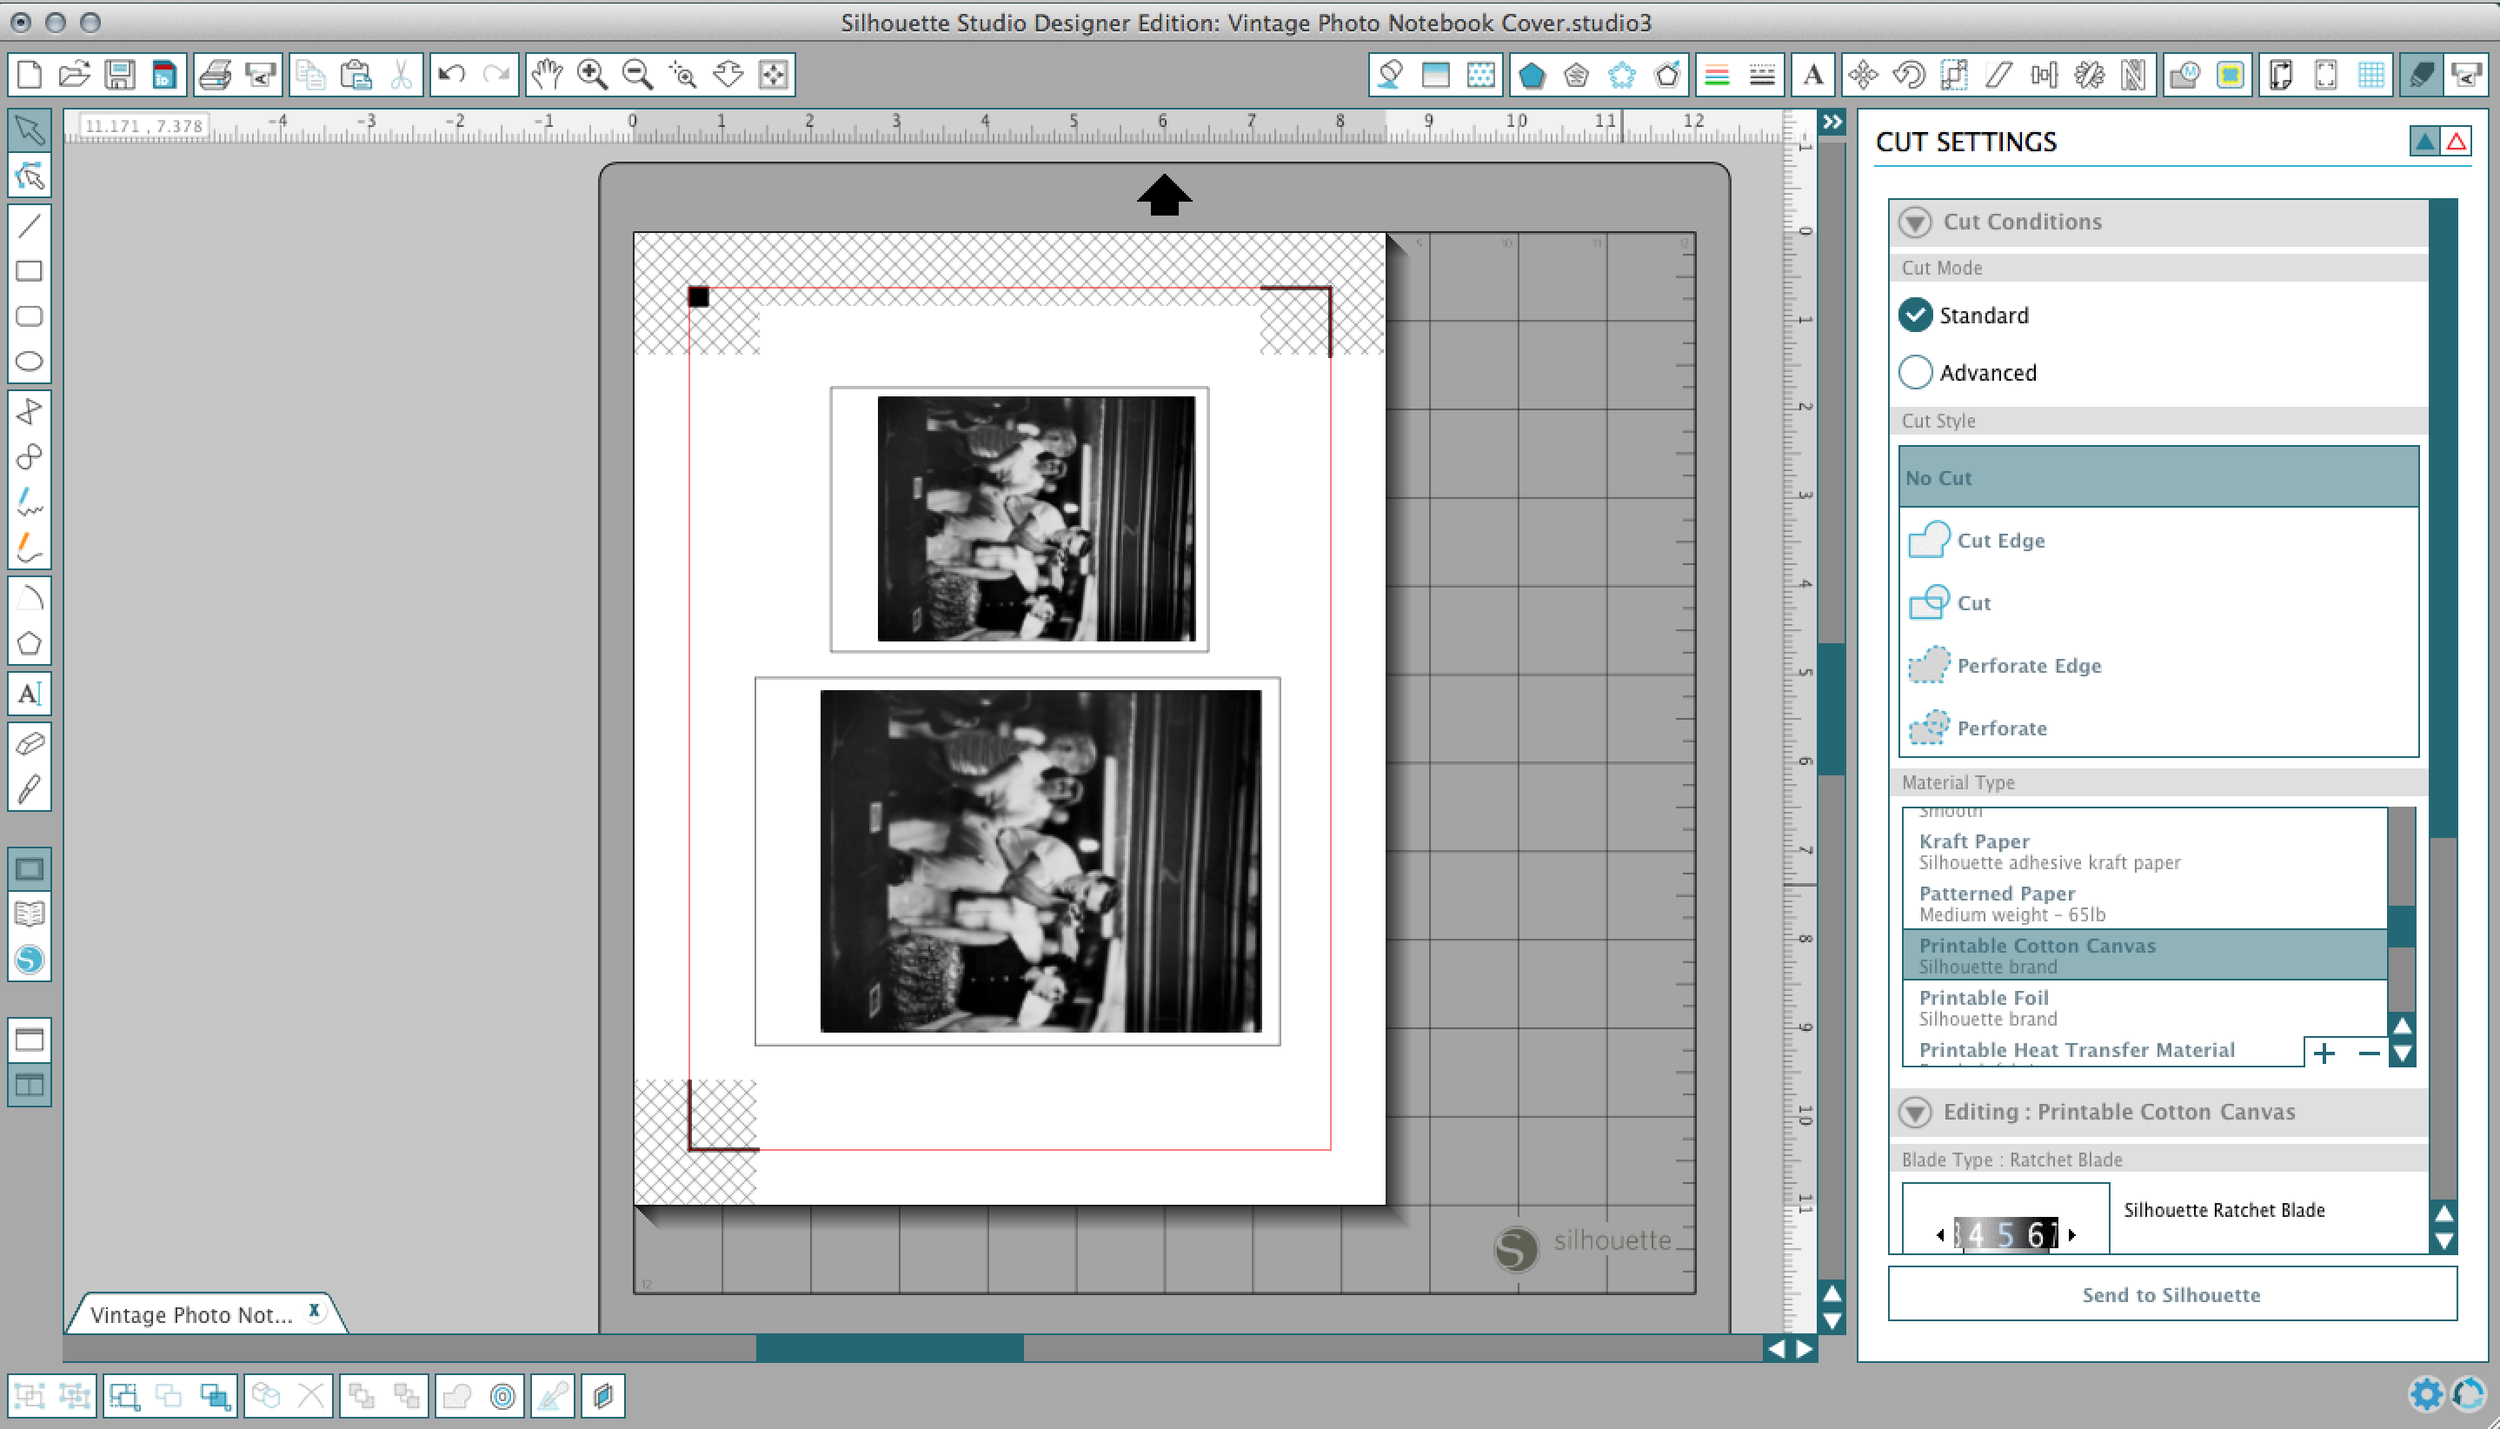 *if you do not own Silhouette Studio, simply print from another program and cut the image by hand